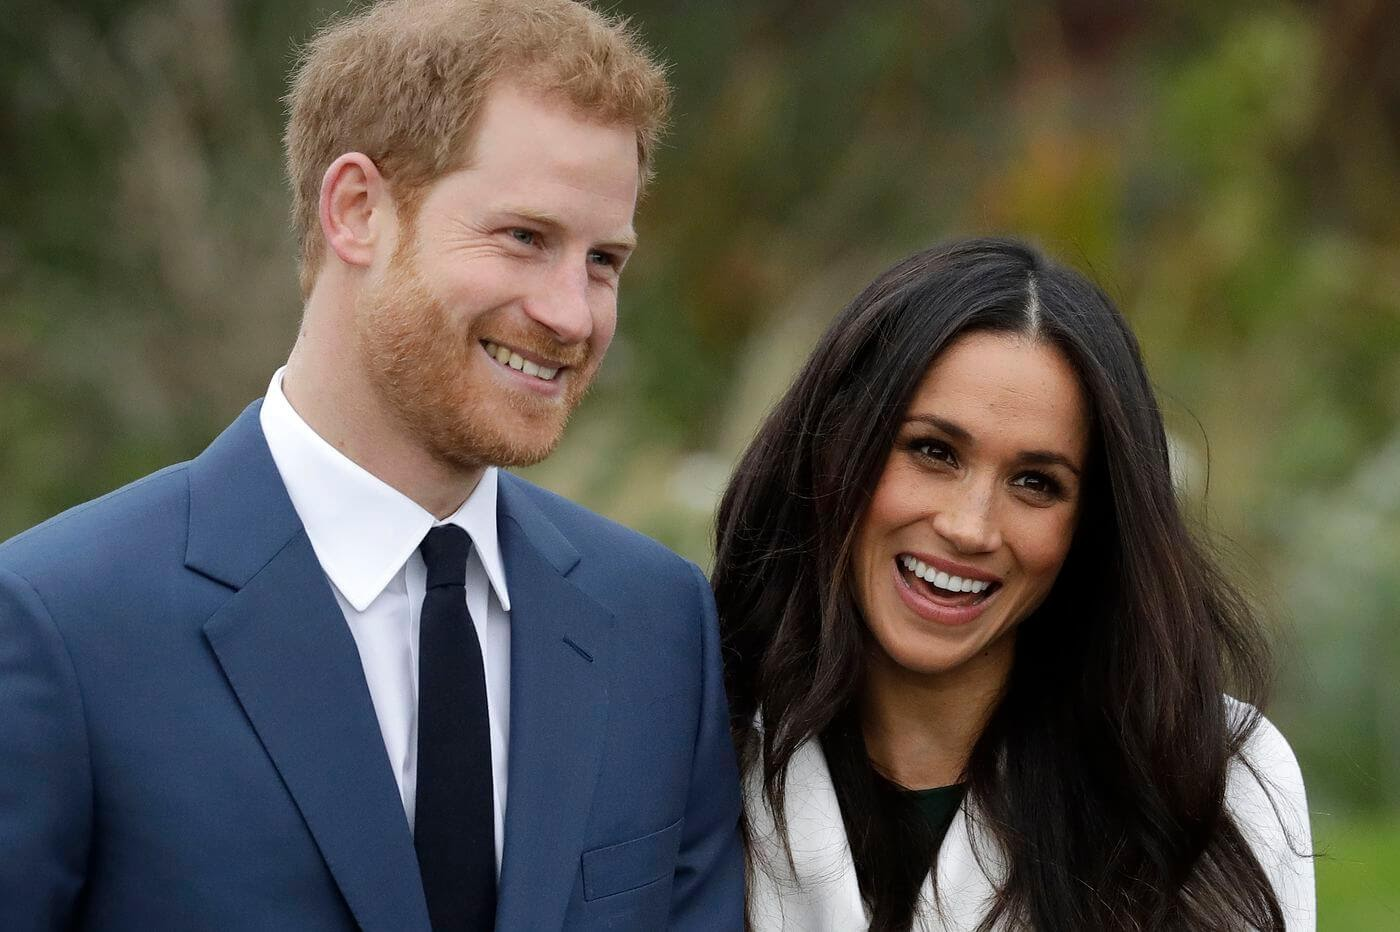 Meghan Markle and Prince Harry sharing about miscarriage